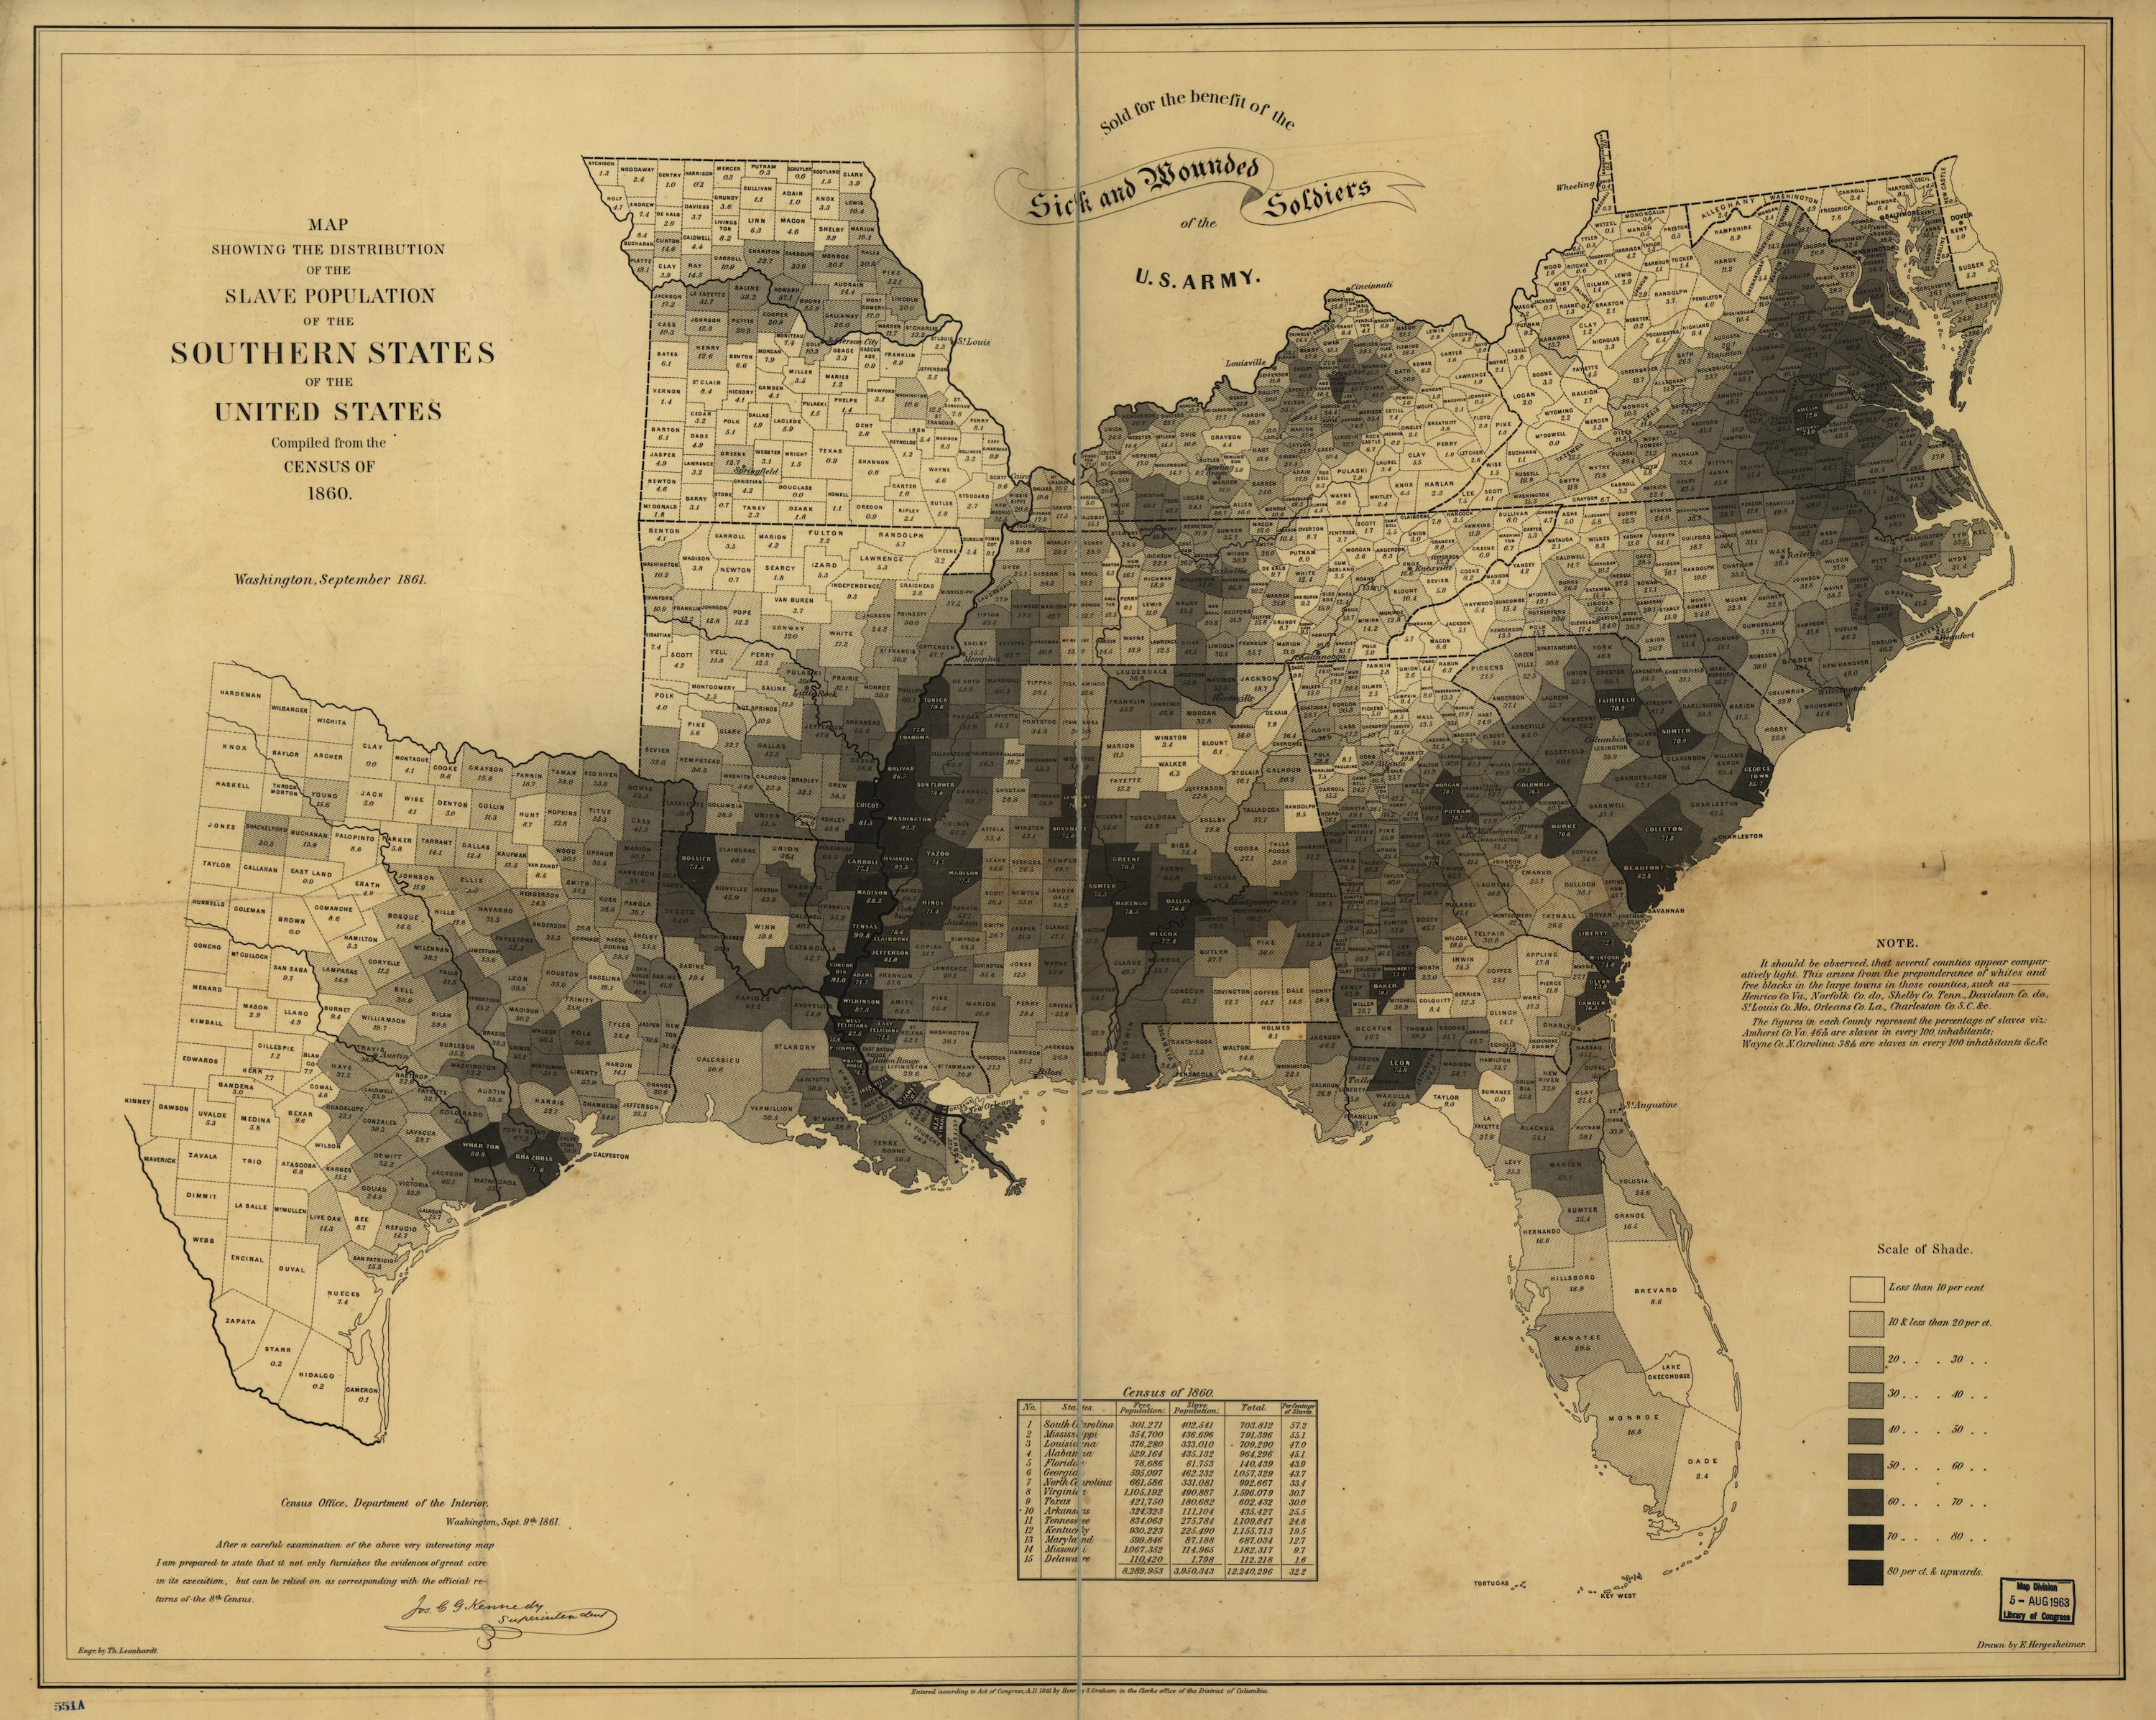 Abraham Lincoln The President Used This Map To See Where Slavery - Blank map of us 1860